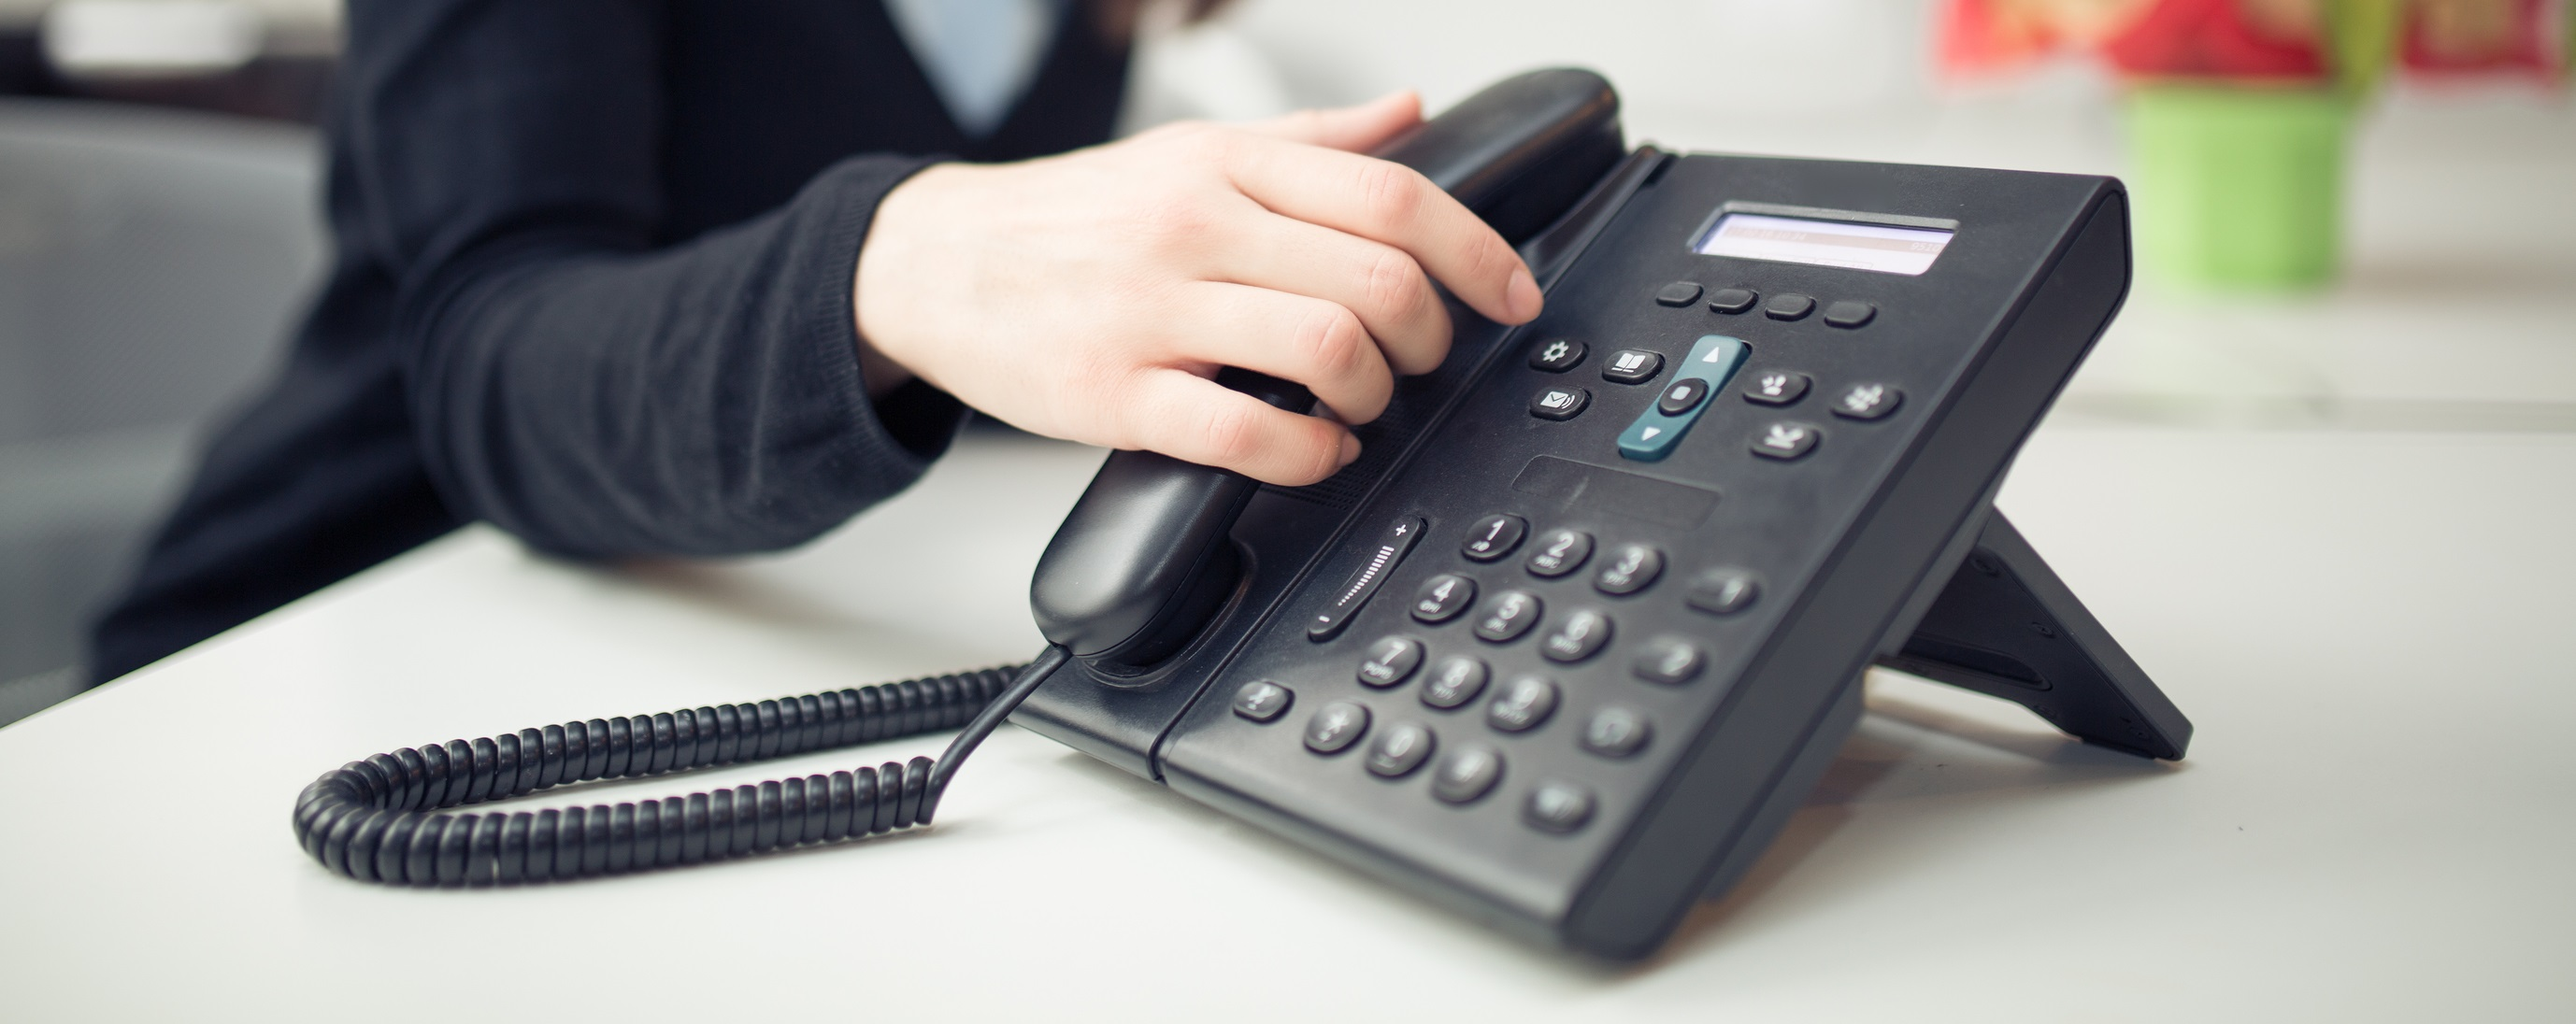 How Does VoIP Call Pickup Work?